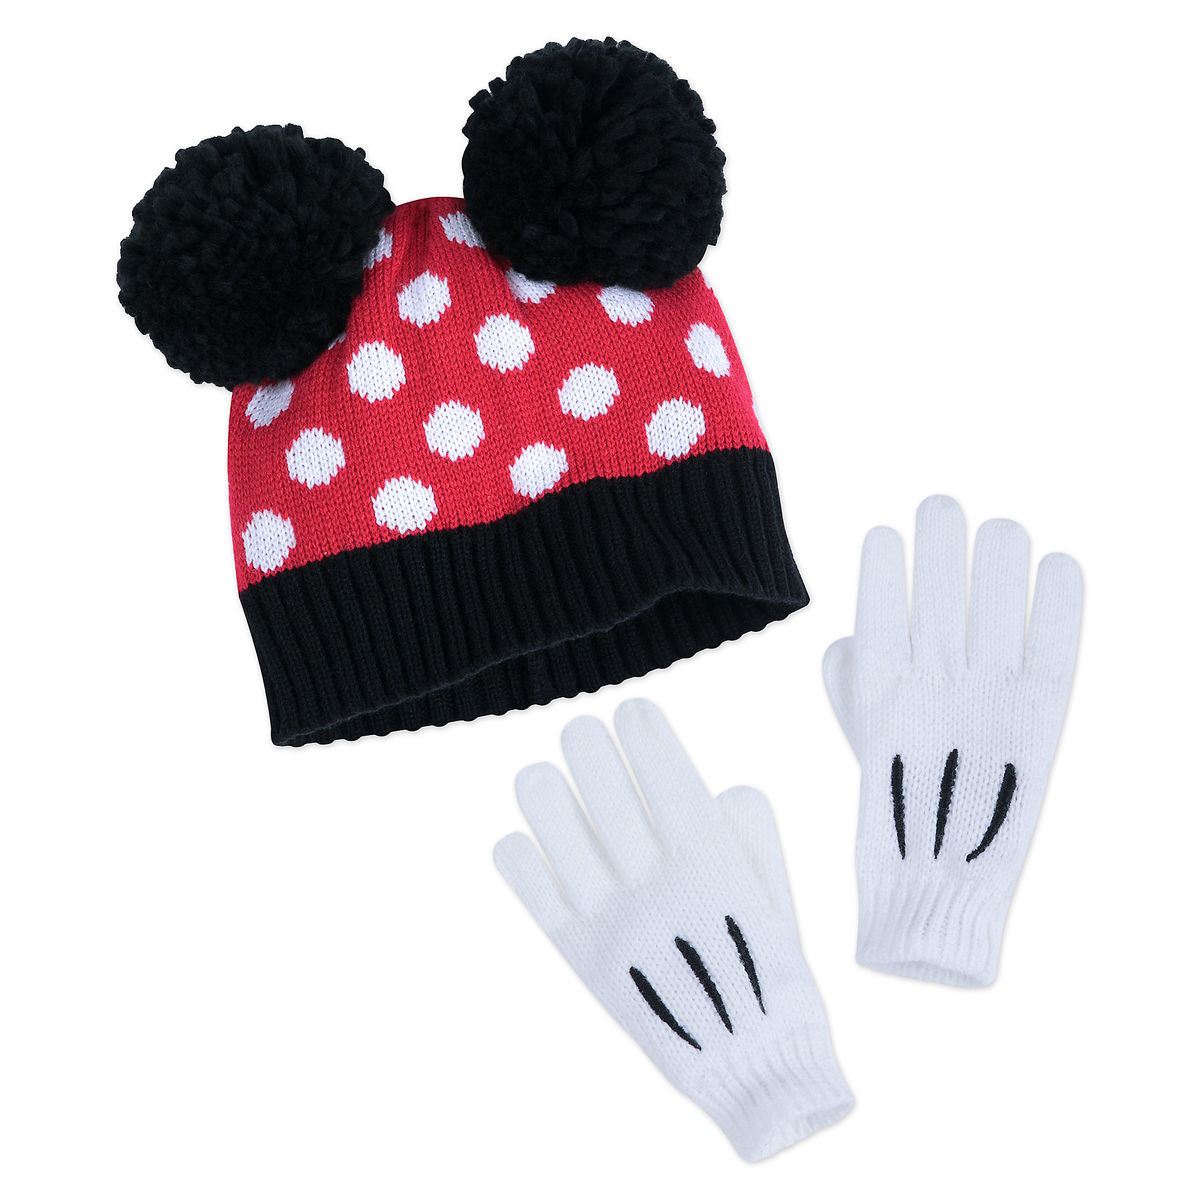 fc8b29a75cf Add to My Lists. Disney Hat and Gloves Set - Minnie Mouse for Kids